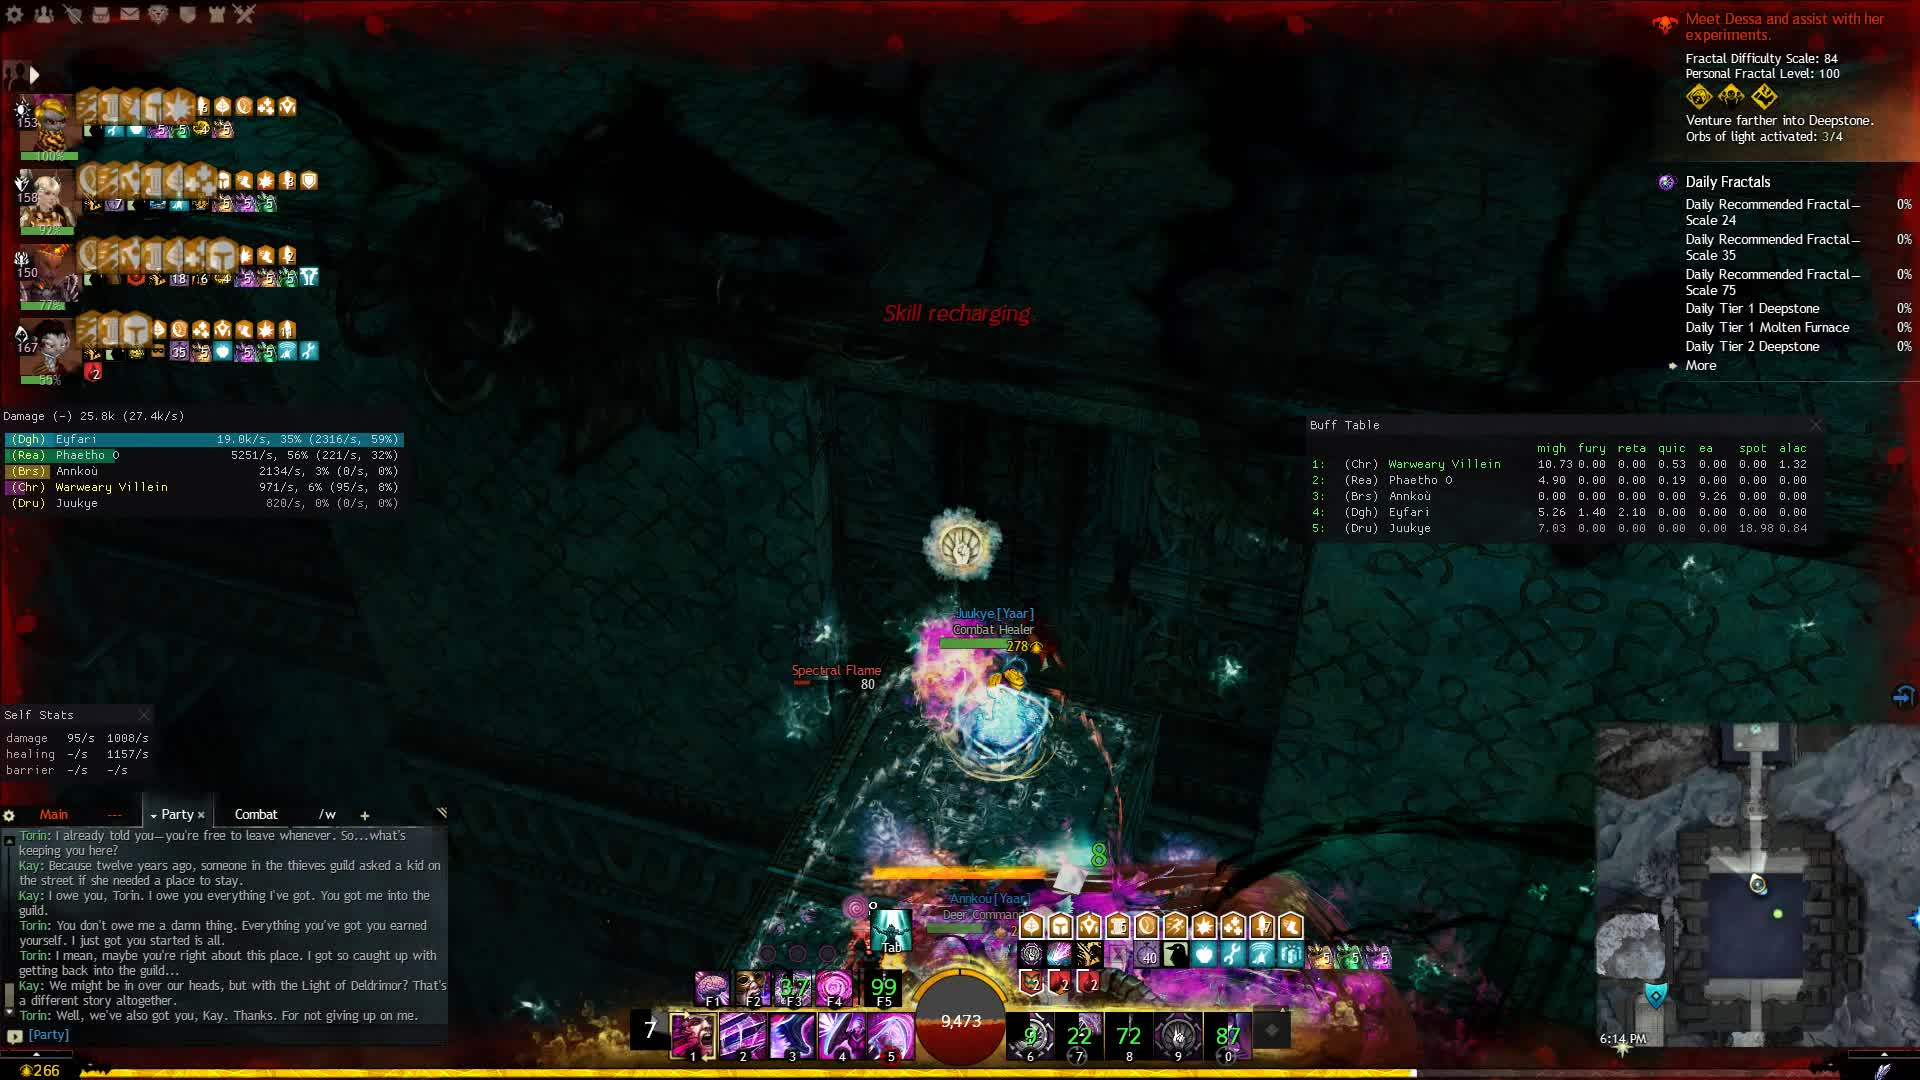 guildwars2, vlc-record-2018-10-06-02h06m09s-Guild Wars 2 2018.10.02 - 17.57.21.08.mp4- GIFs